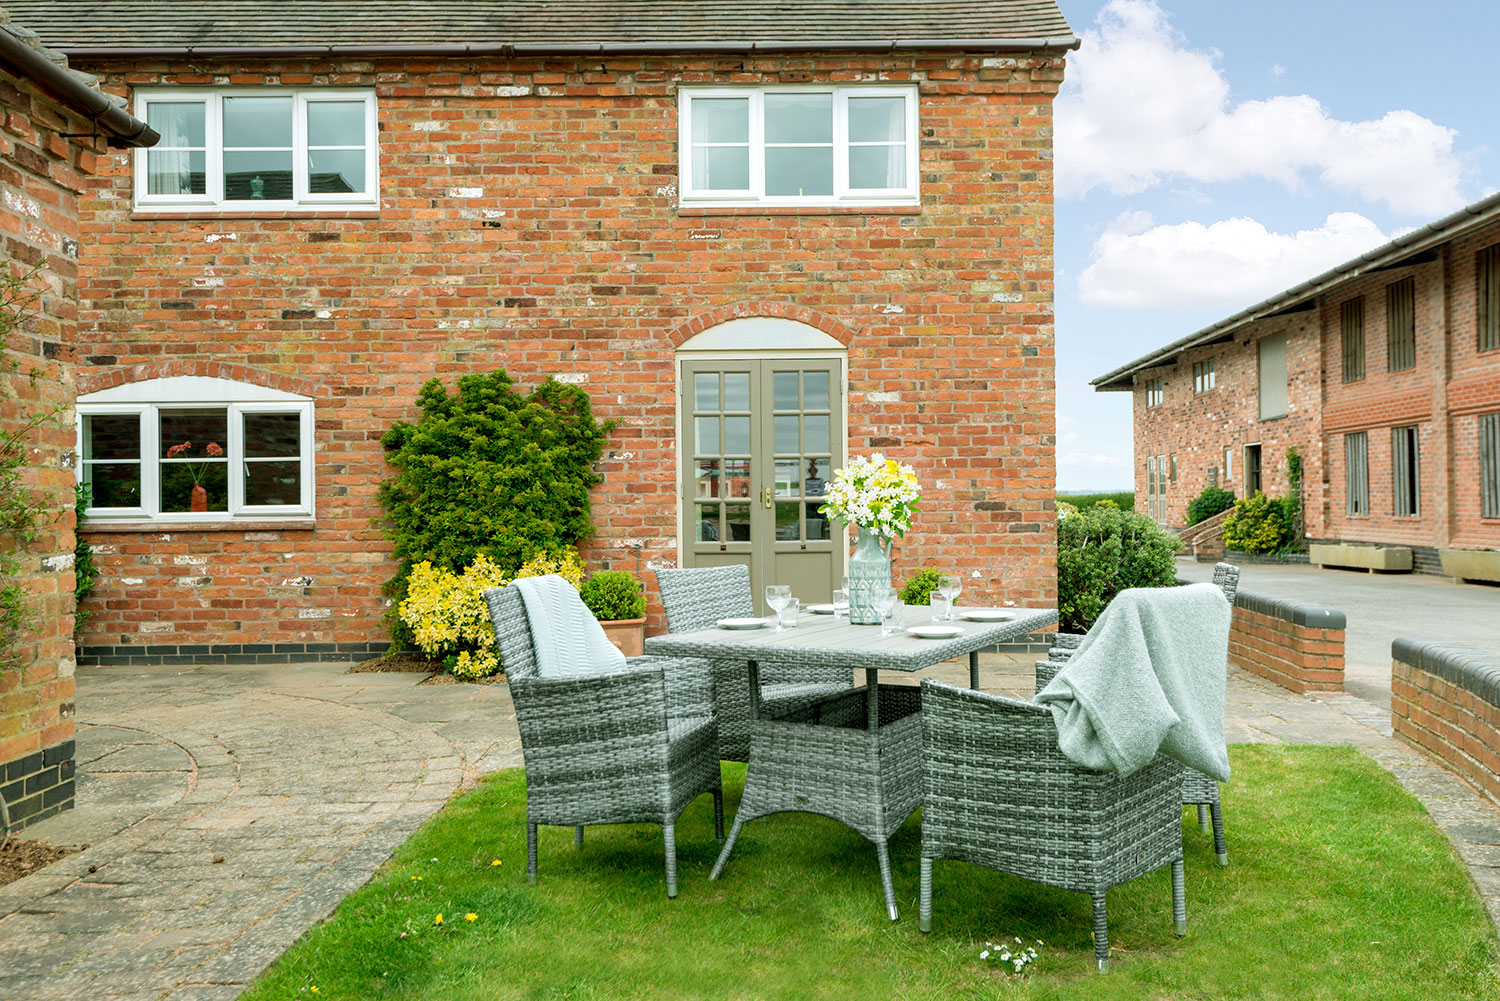 Holiday cottages with private outside area in central England | Upper Rectory Farm Cottages